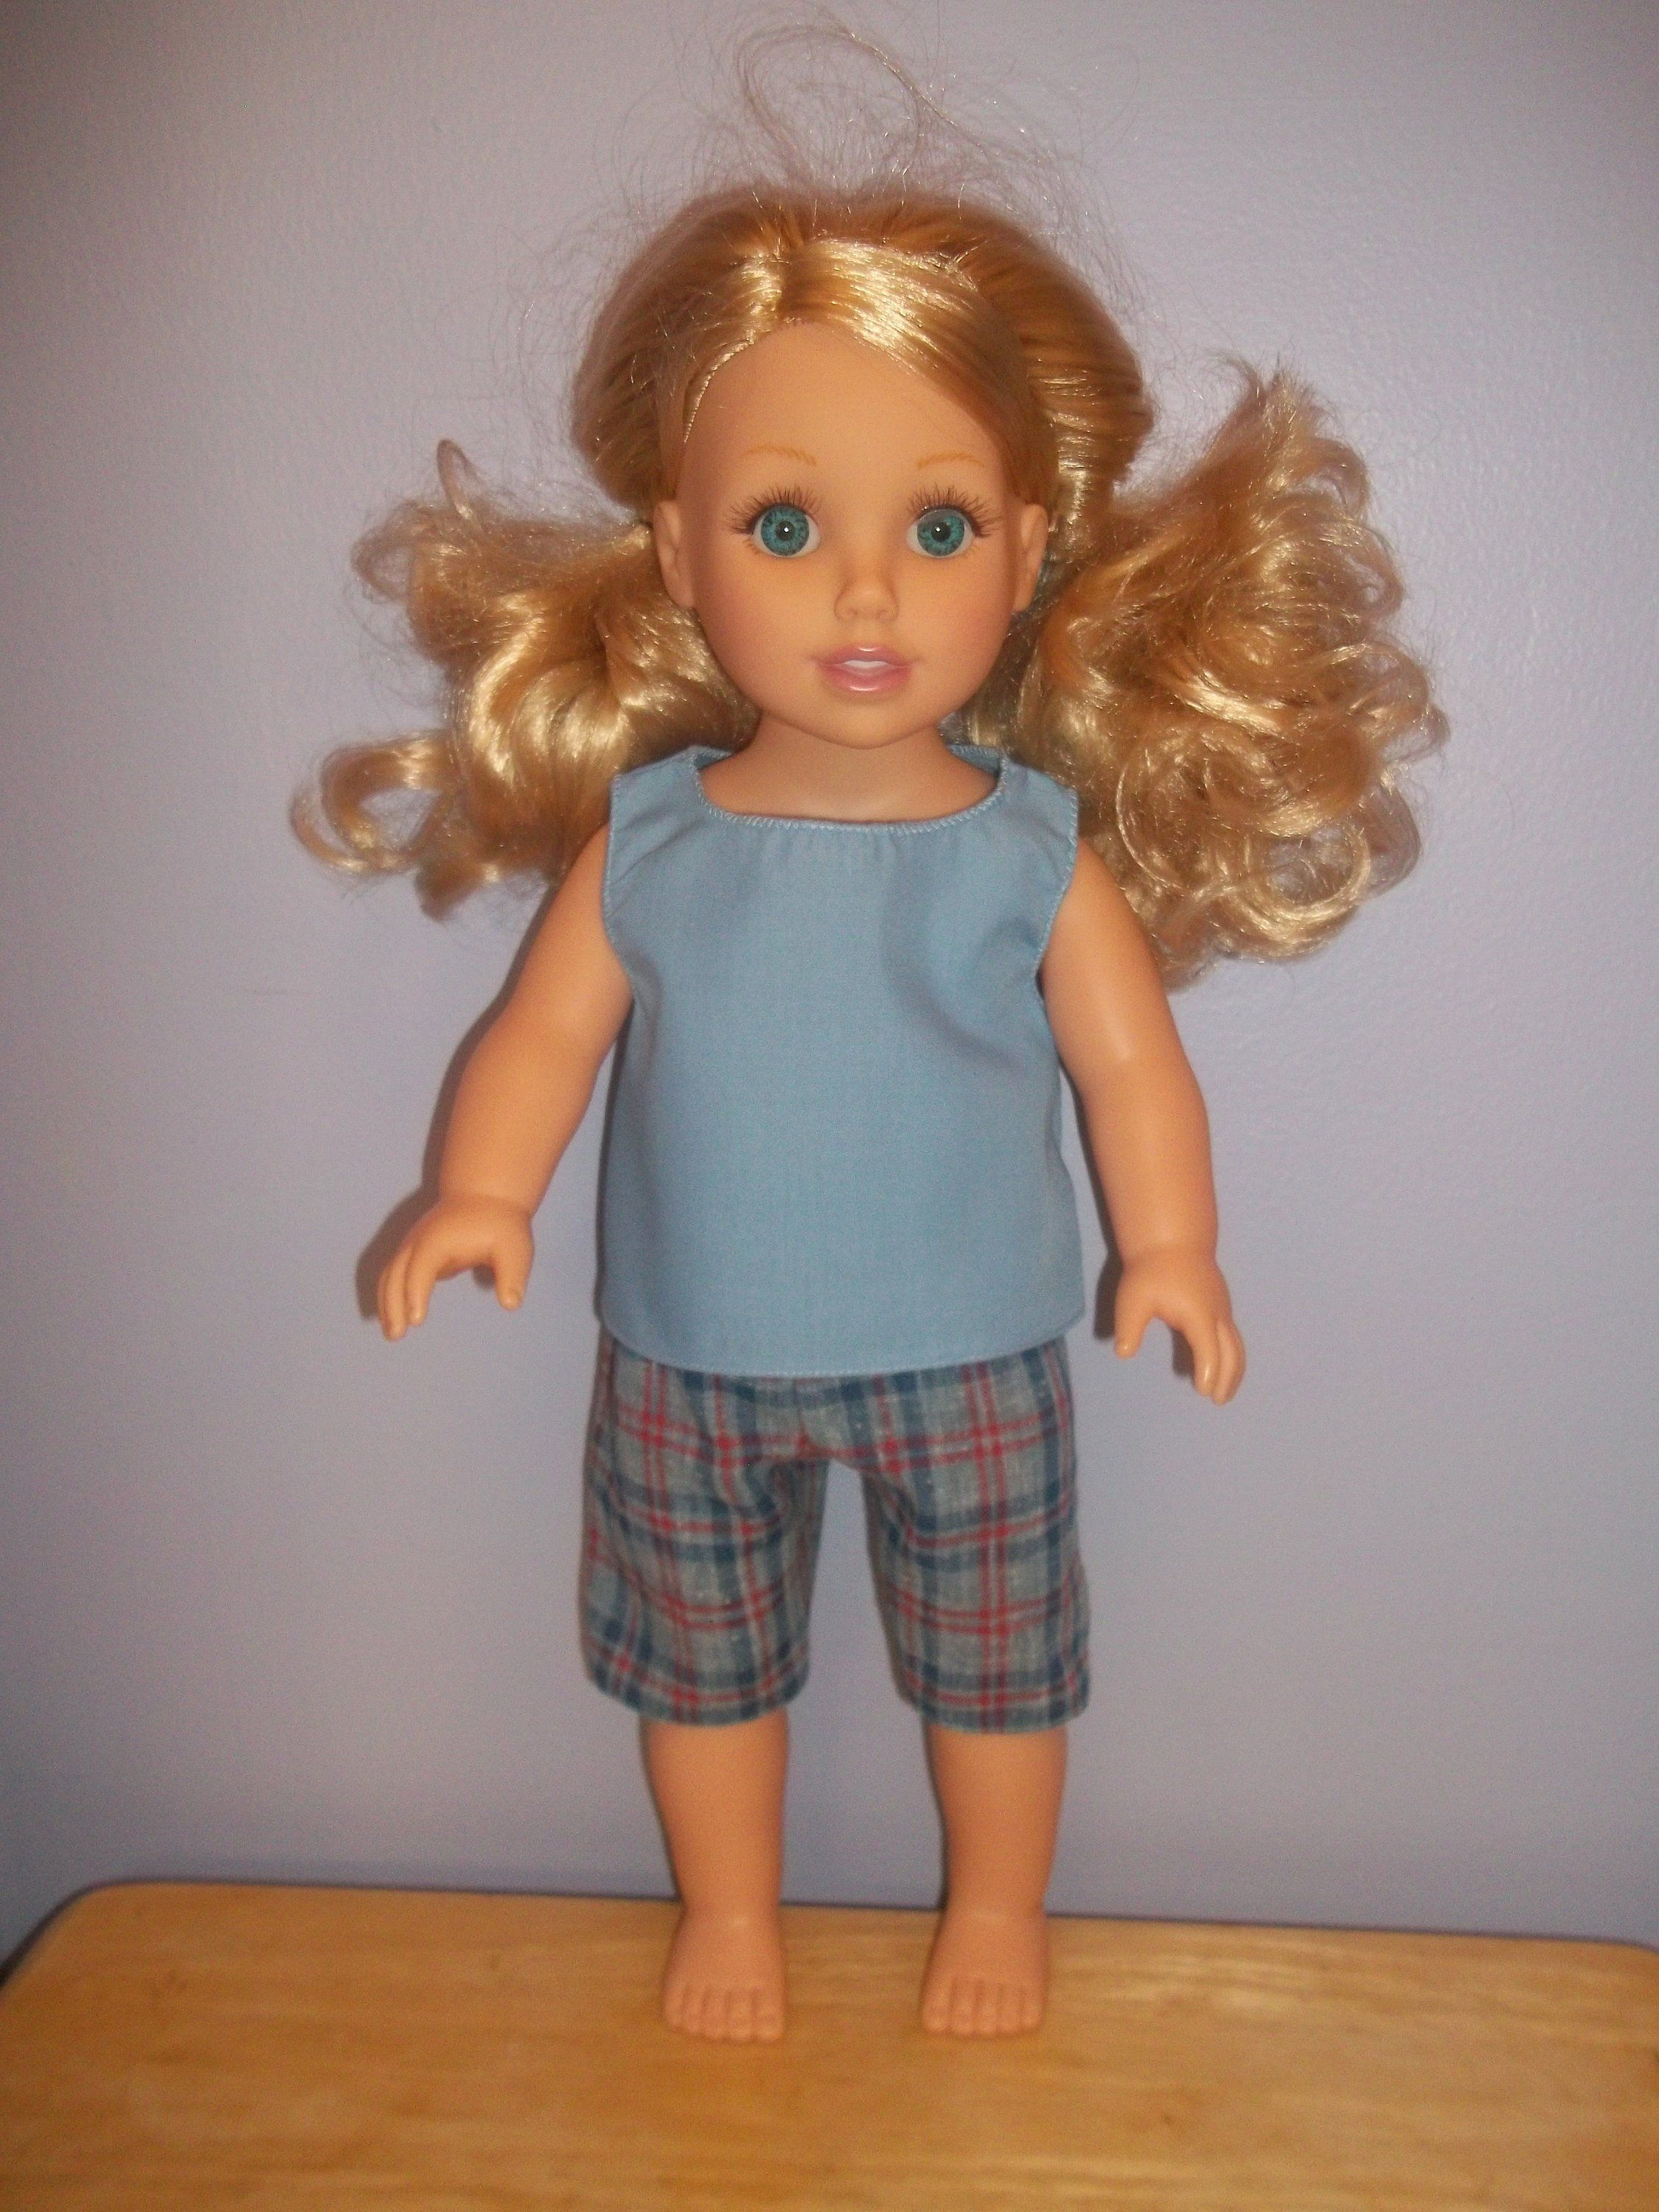 American 18 Inch Doll Clothes top and shorts light blue top and blue red plaid shorts #18inchdollsandclothes